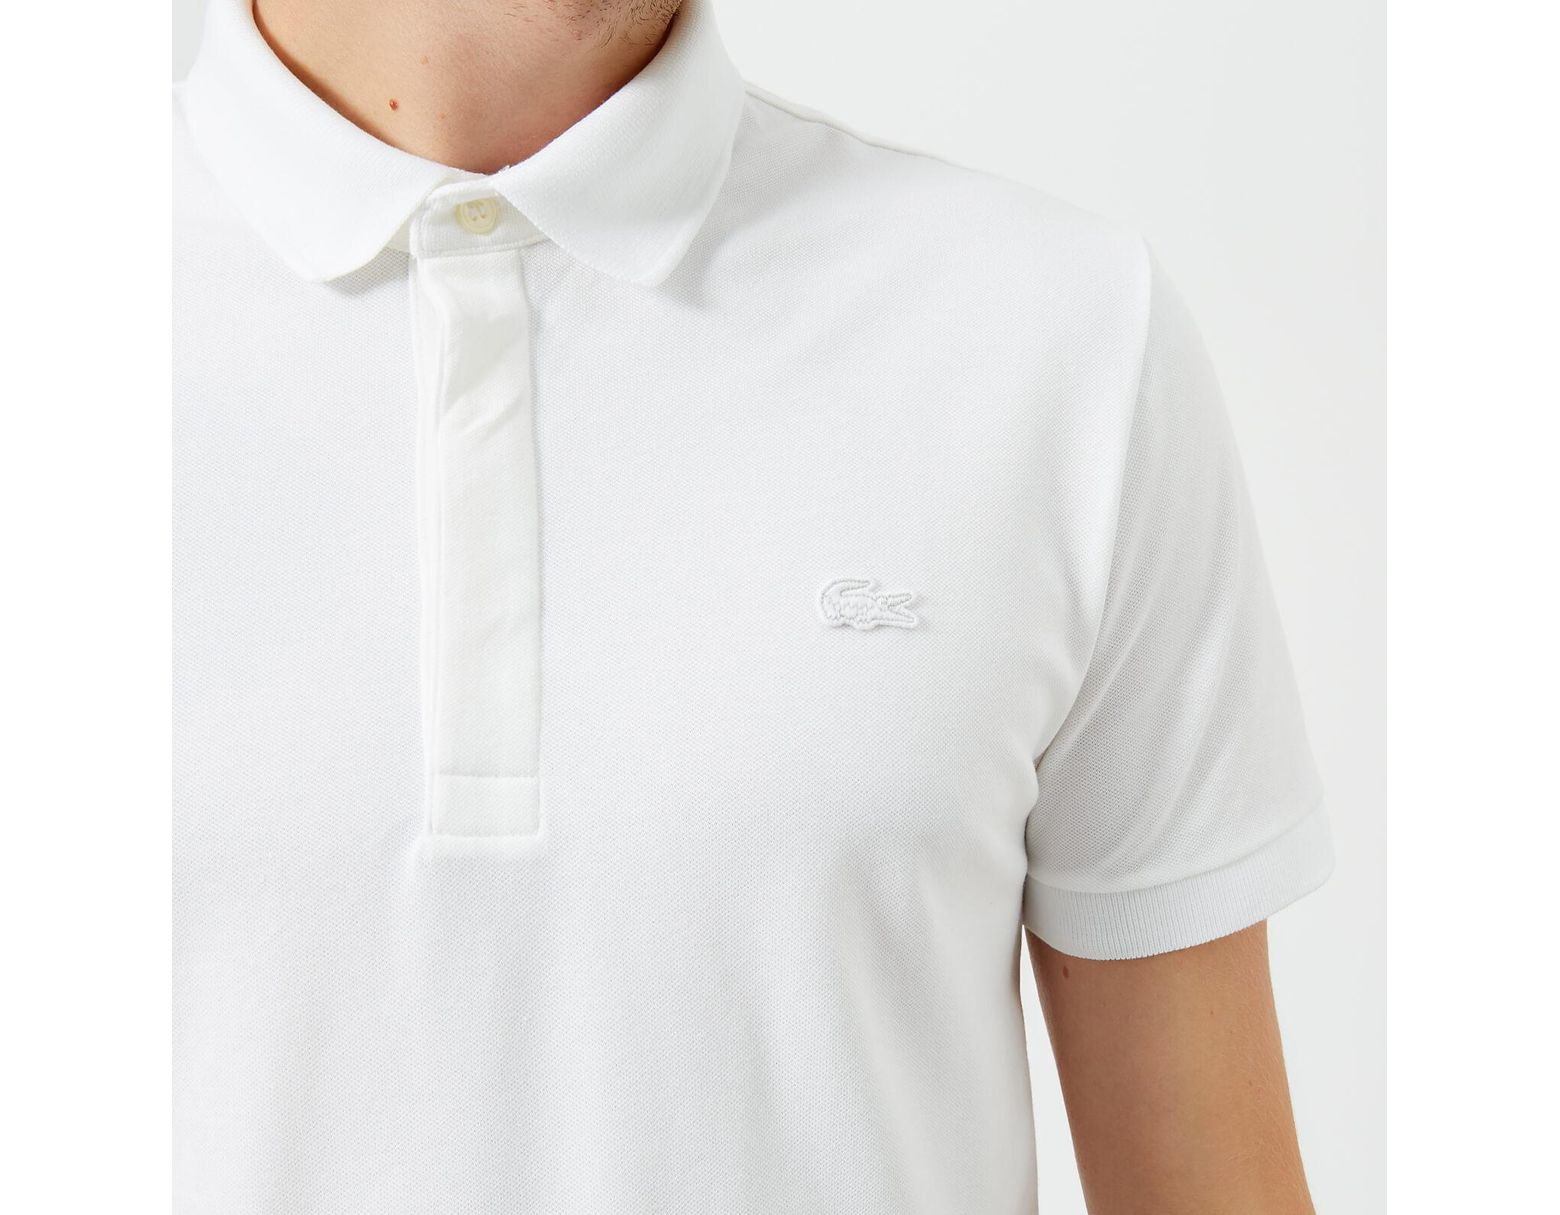 fec263d014 Lacoste Short Sleeve Paris Polo Shirt in White for Men - Lyst